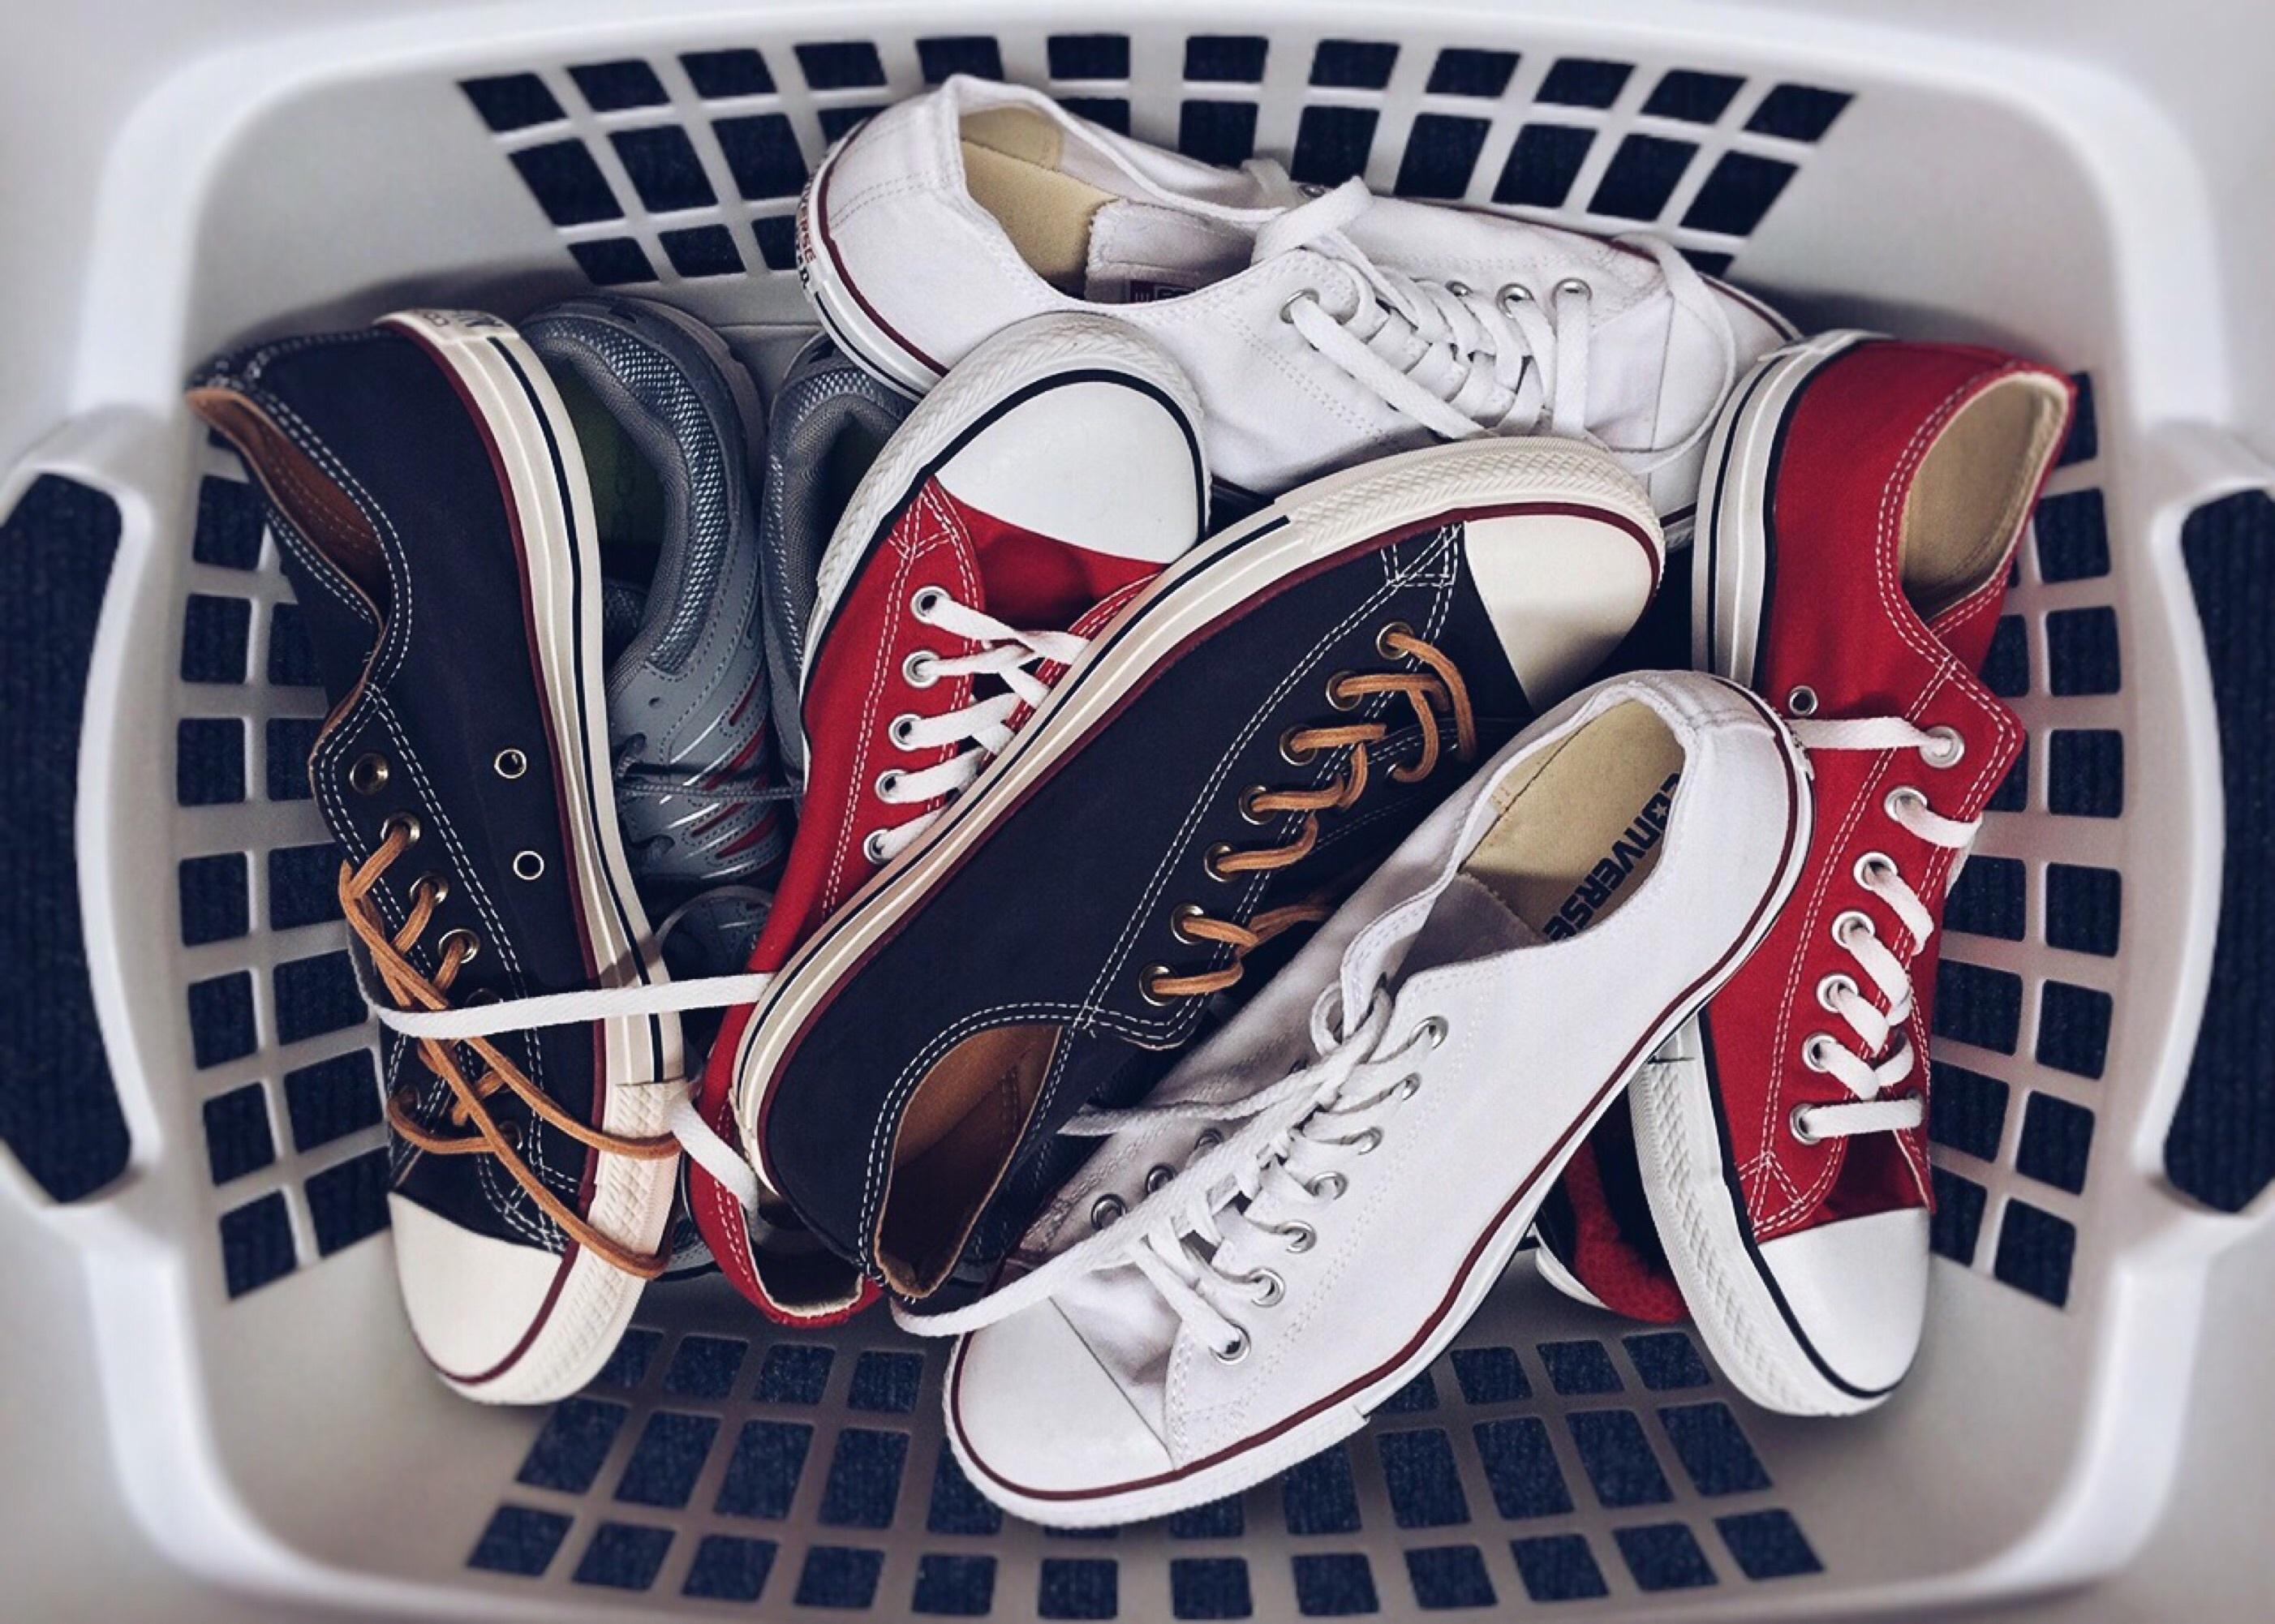 Converse Chart Size: Free stock photo of chucks classic converse,Chart